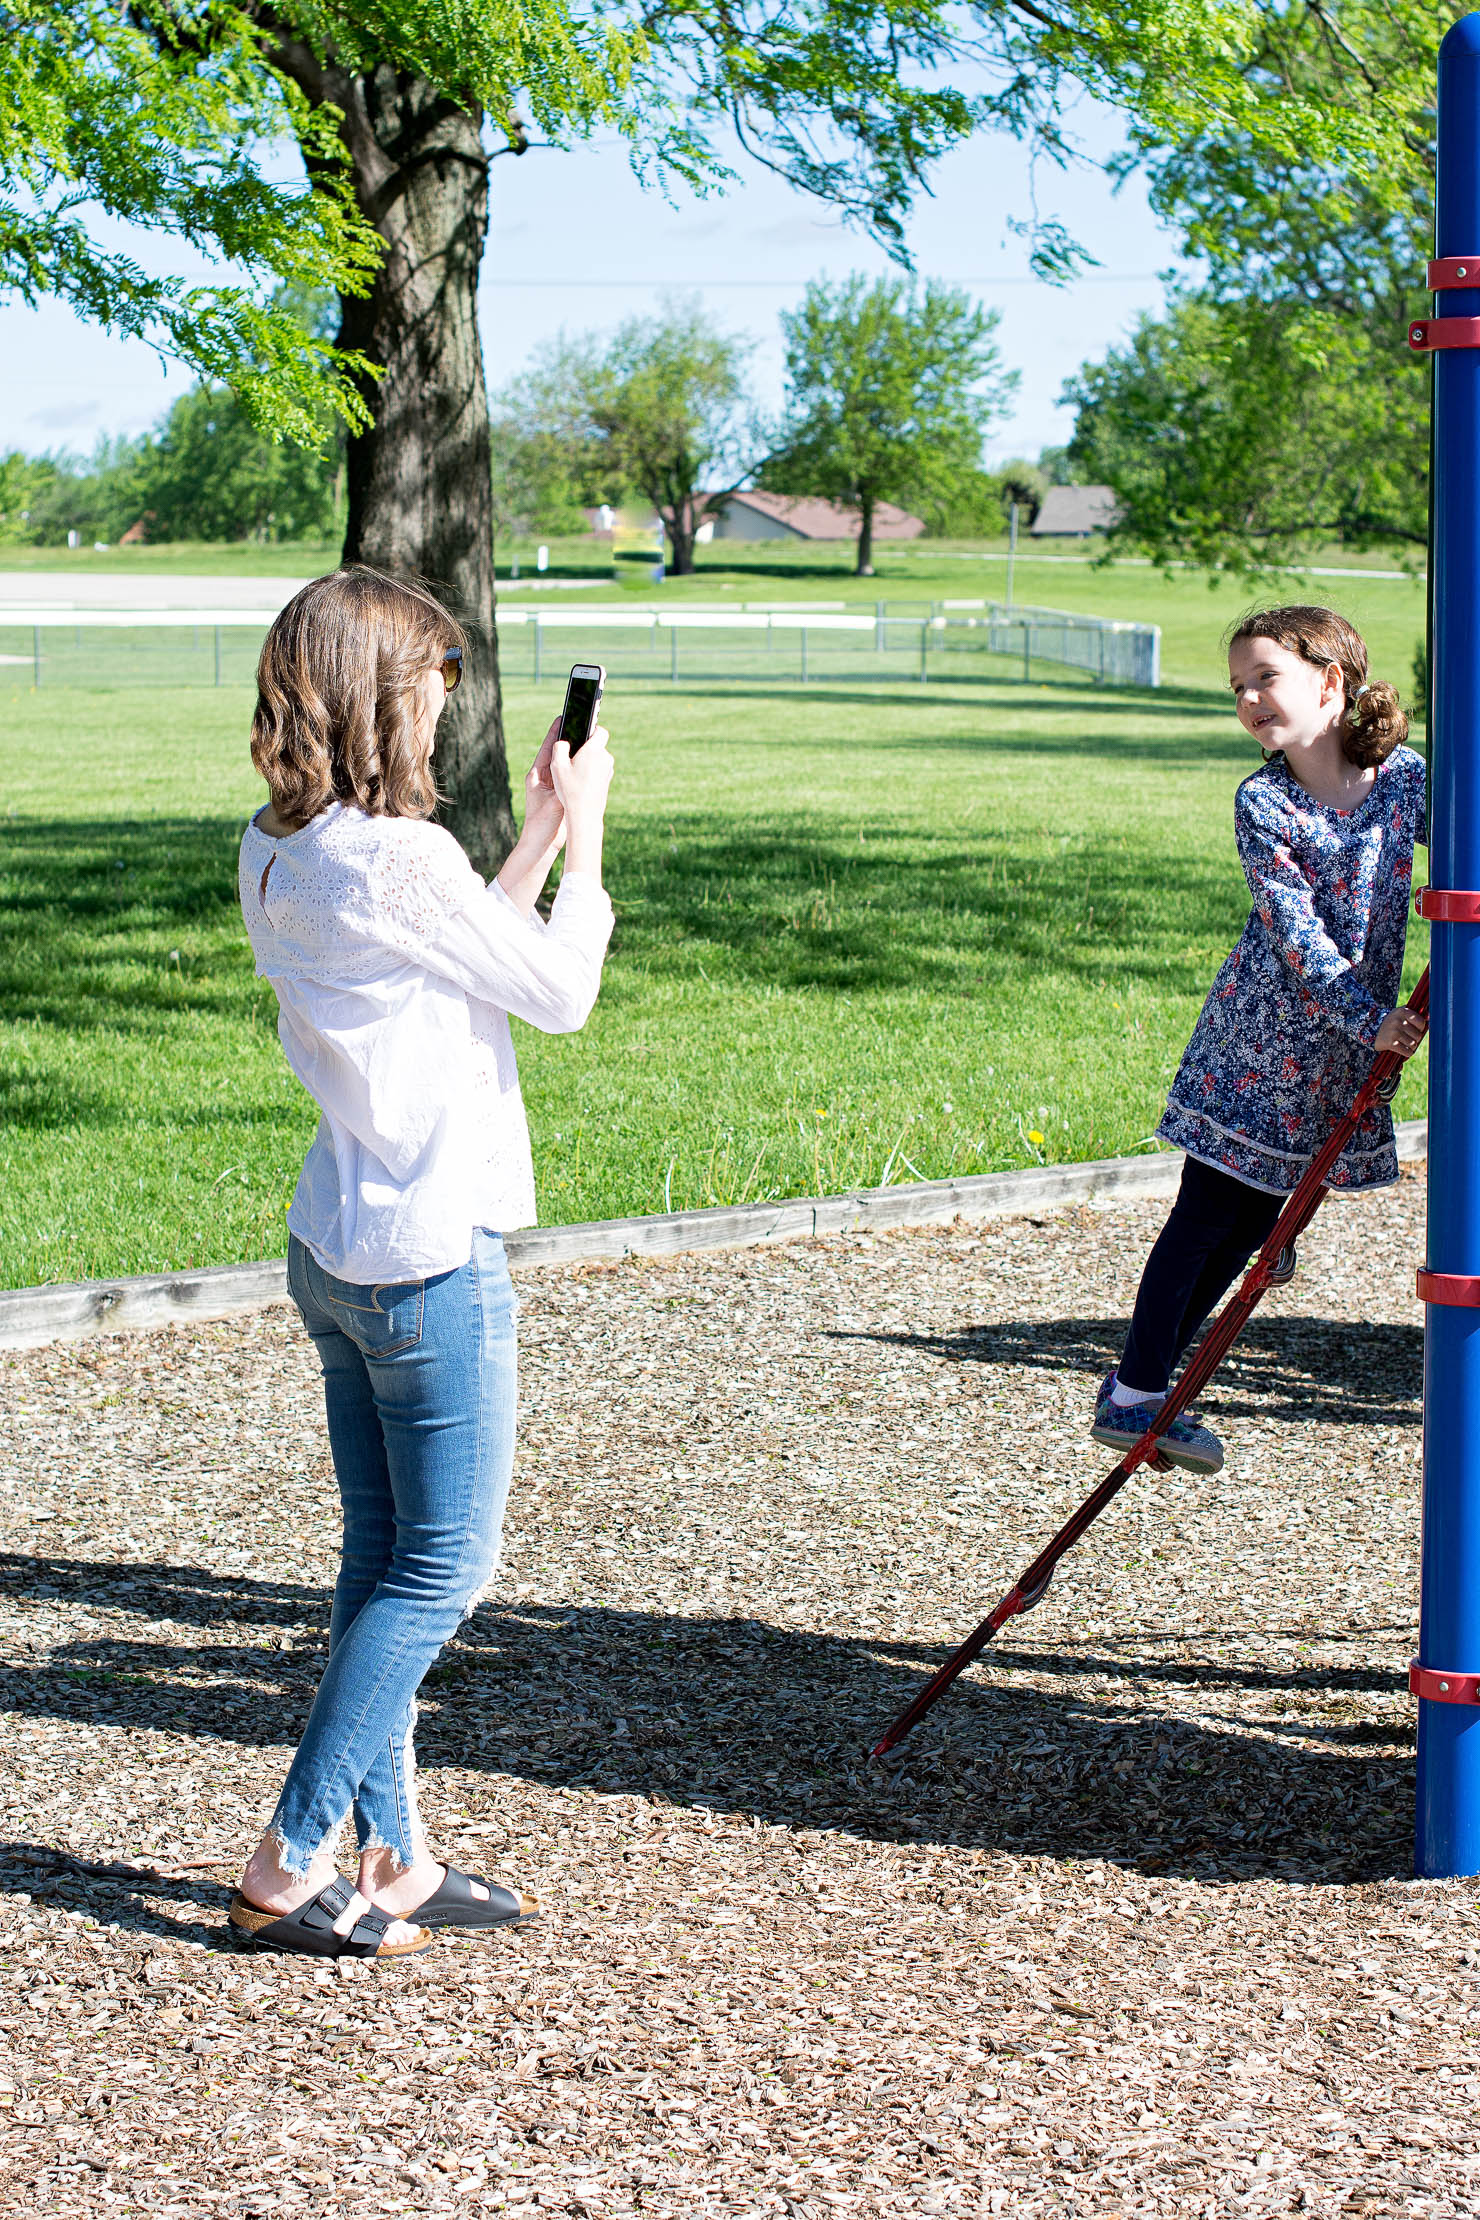 picture keeper iphone photo backup, backup photos on the go, easy photo storage , mobile photo storage, kids playing at the park